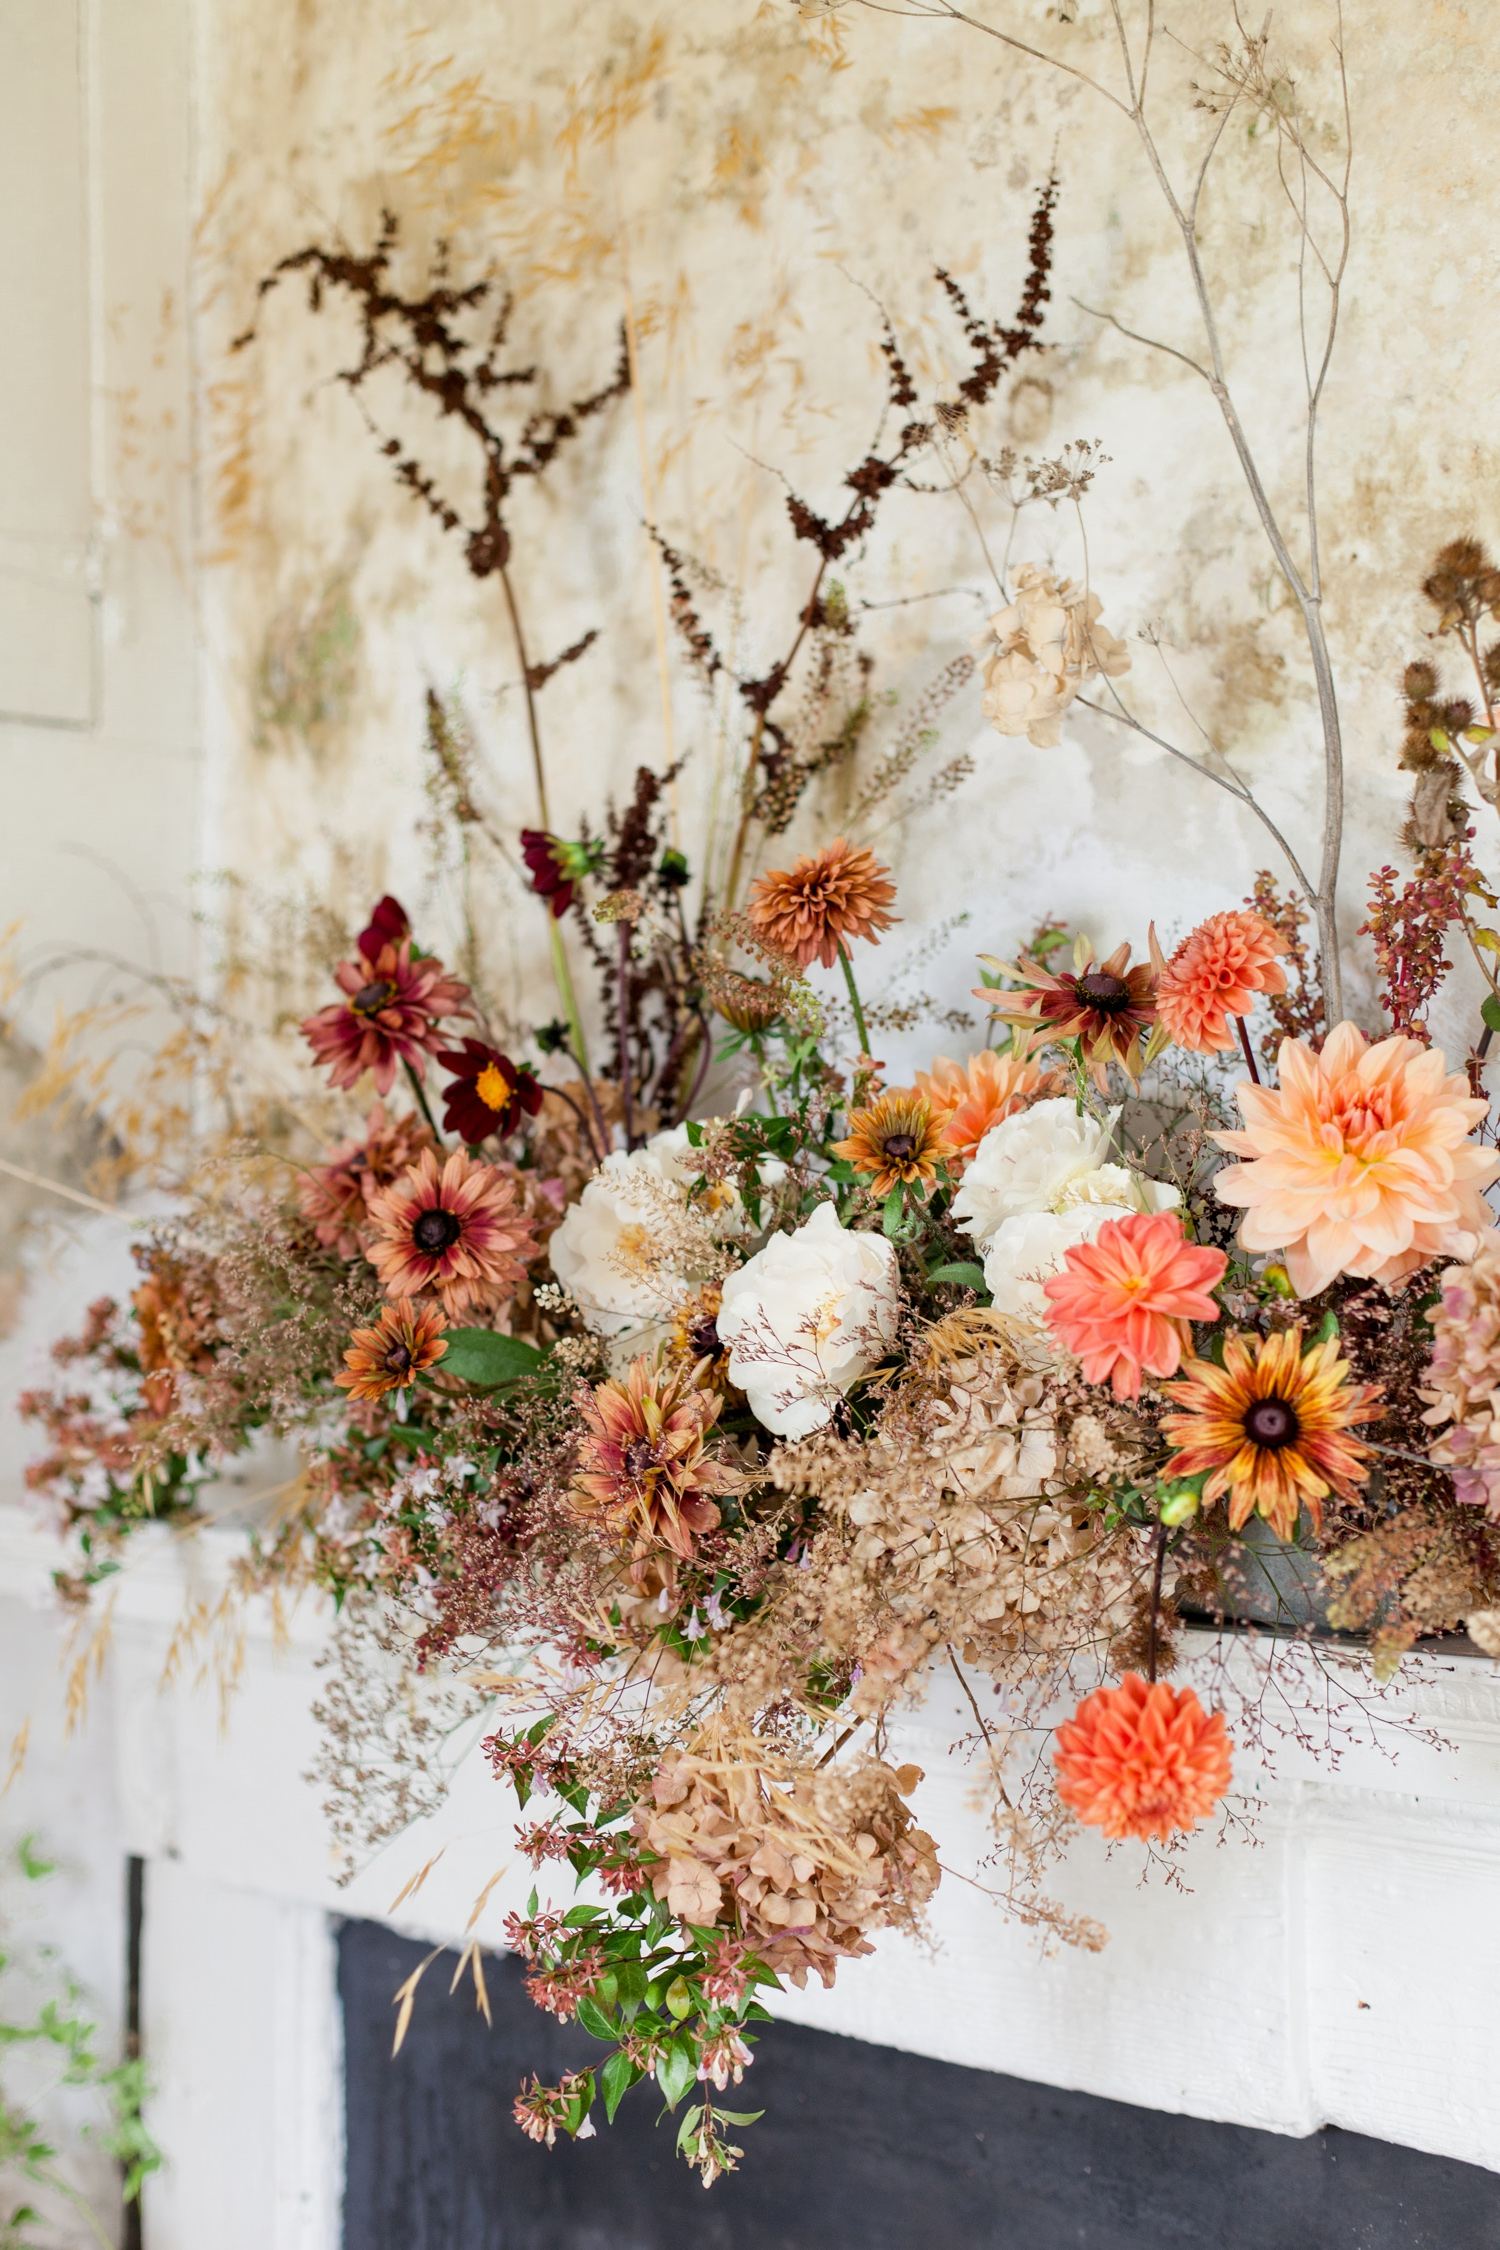 Wild and Romantic Wedding Flowers, an Autumnal mantlepiece arrangement